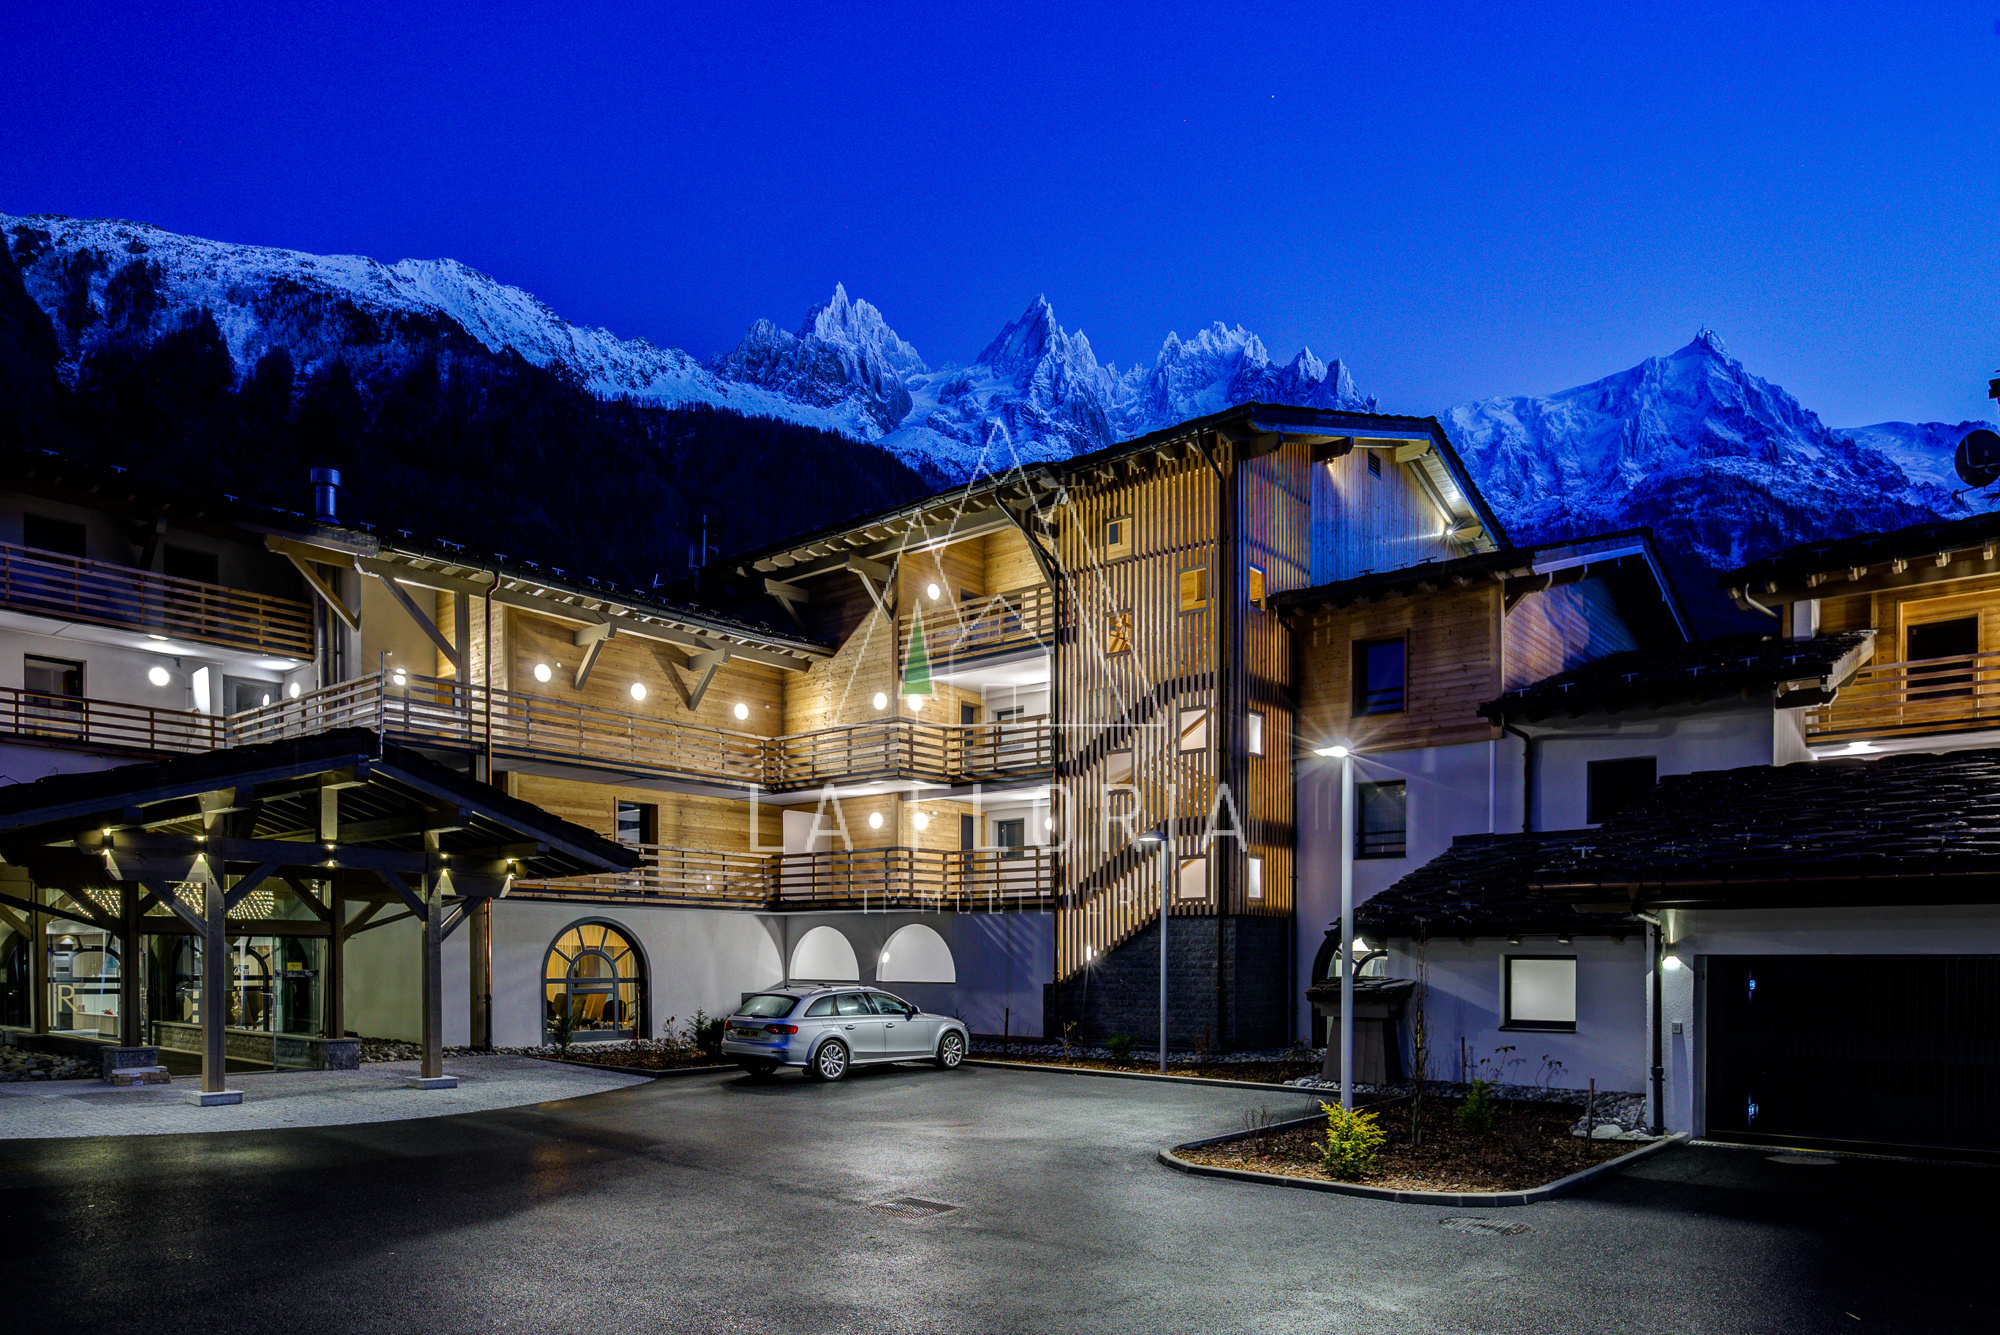 2 BEDROOM 61 M2 APARTMENT IN NEW LUXURY DEVELOPMENT, CHAMONIX LES PRAZ